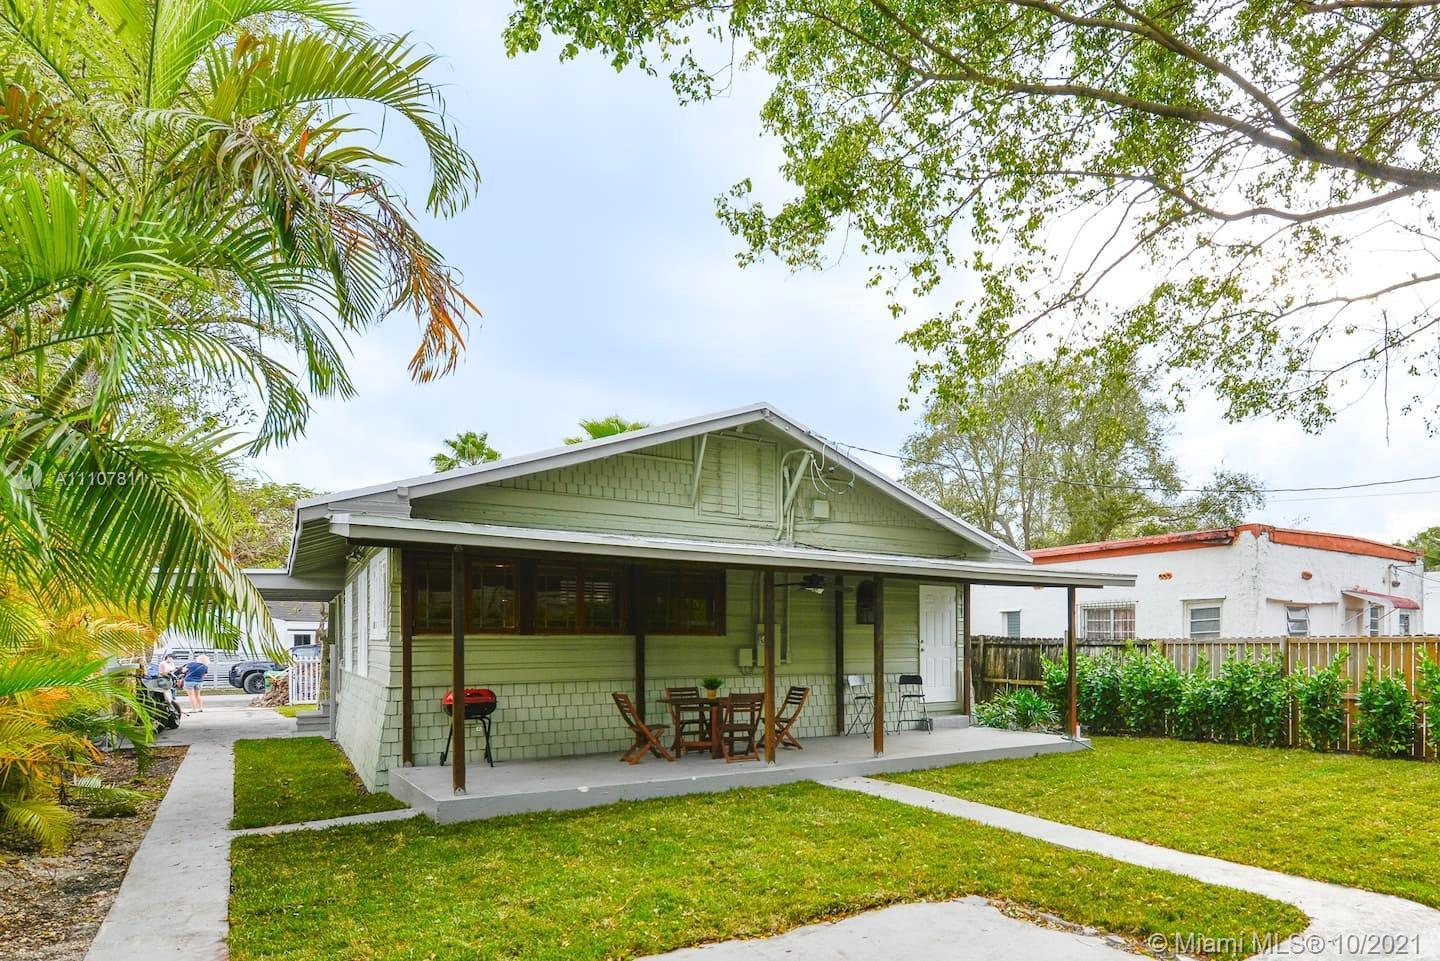 Beautifully renovated 3 bed/2 bath key west style home in move-in condition in the Design District.